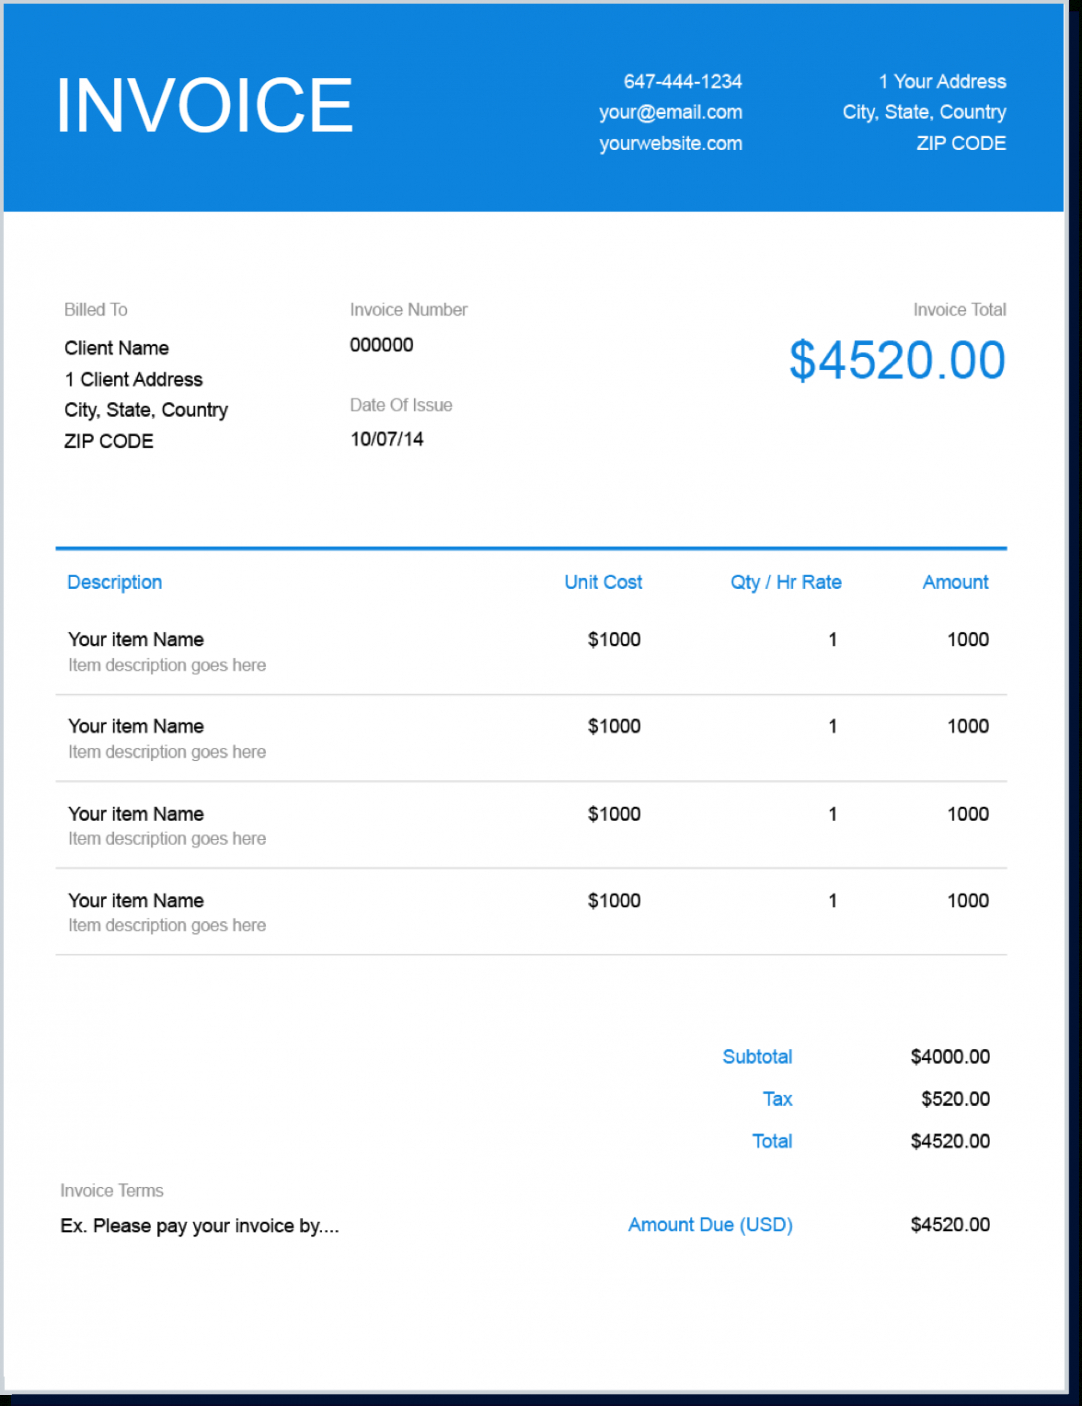 printable invoice template | send in minutes | create free invoices instantly software development invoice template word